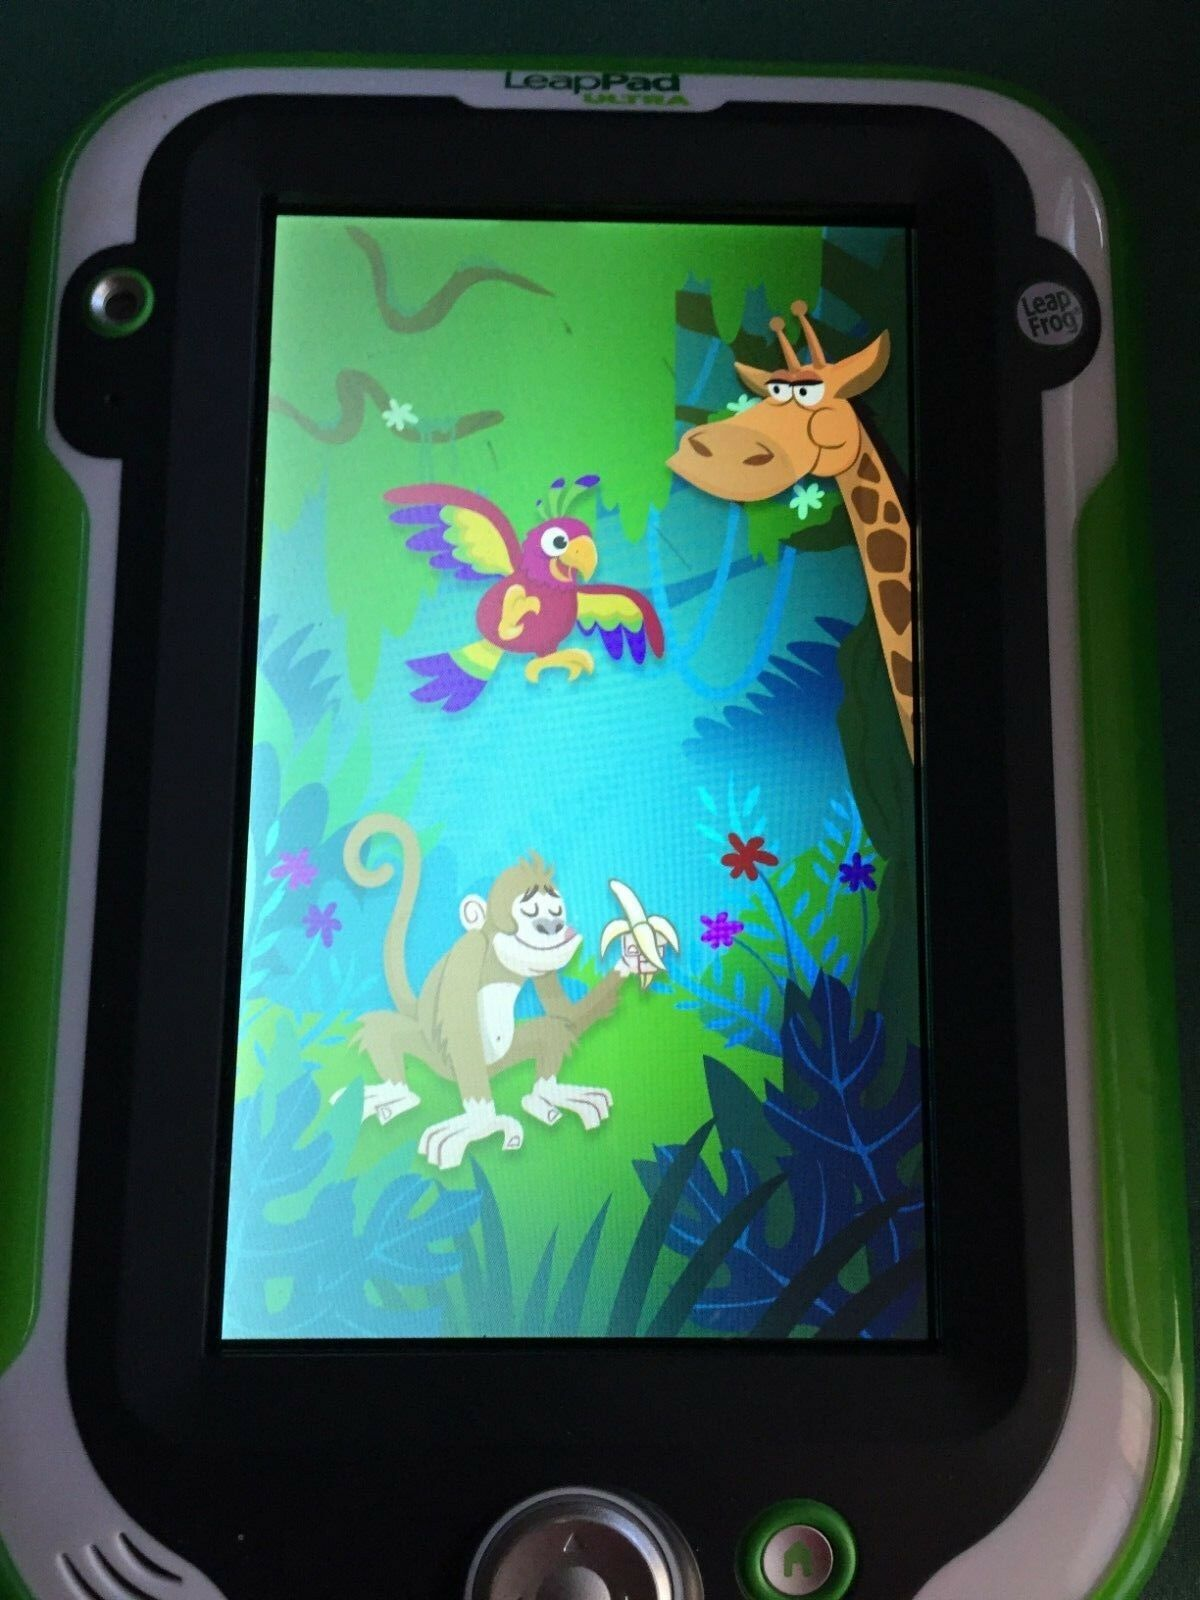 Outstanding Leapfrog Leappad With Games Cartridge 2 Tablet Learning Download Free Architecture Designs Rallybritishbridgeorg